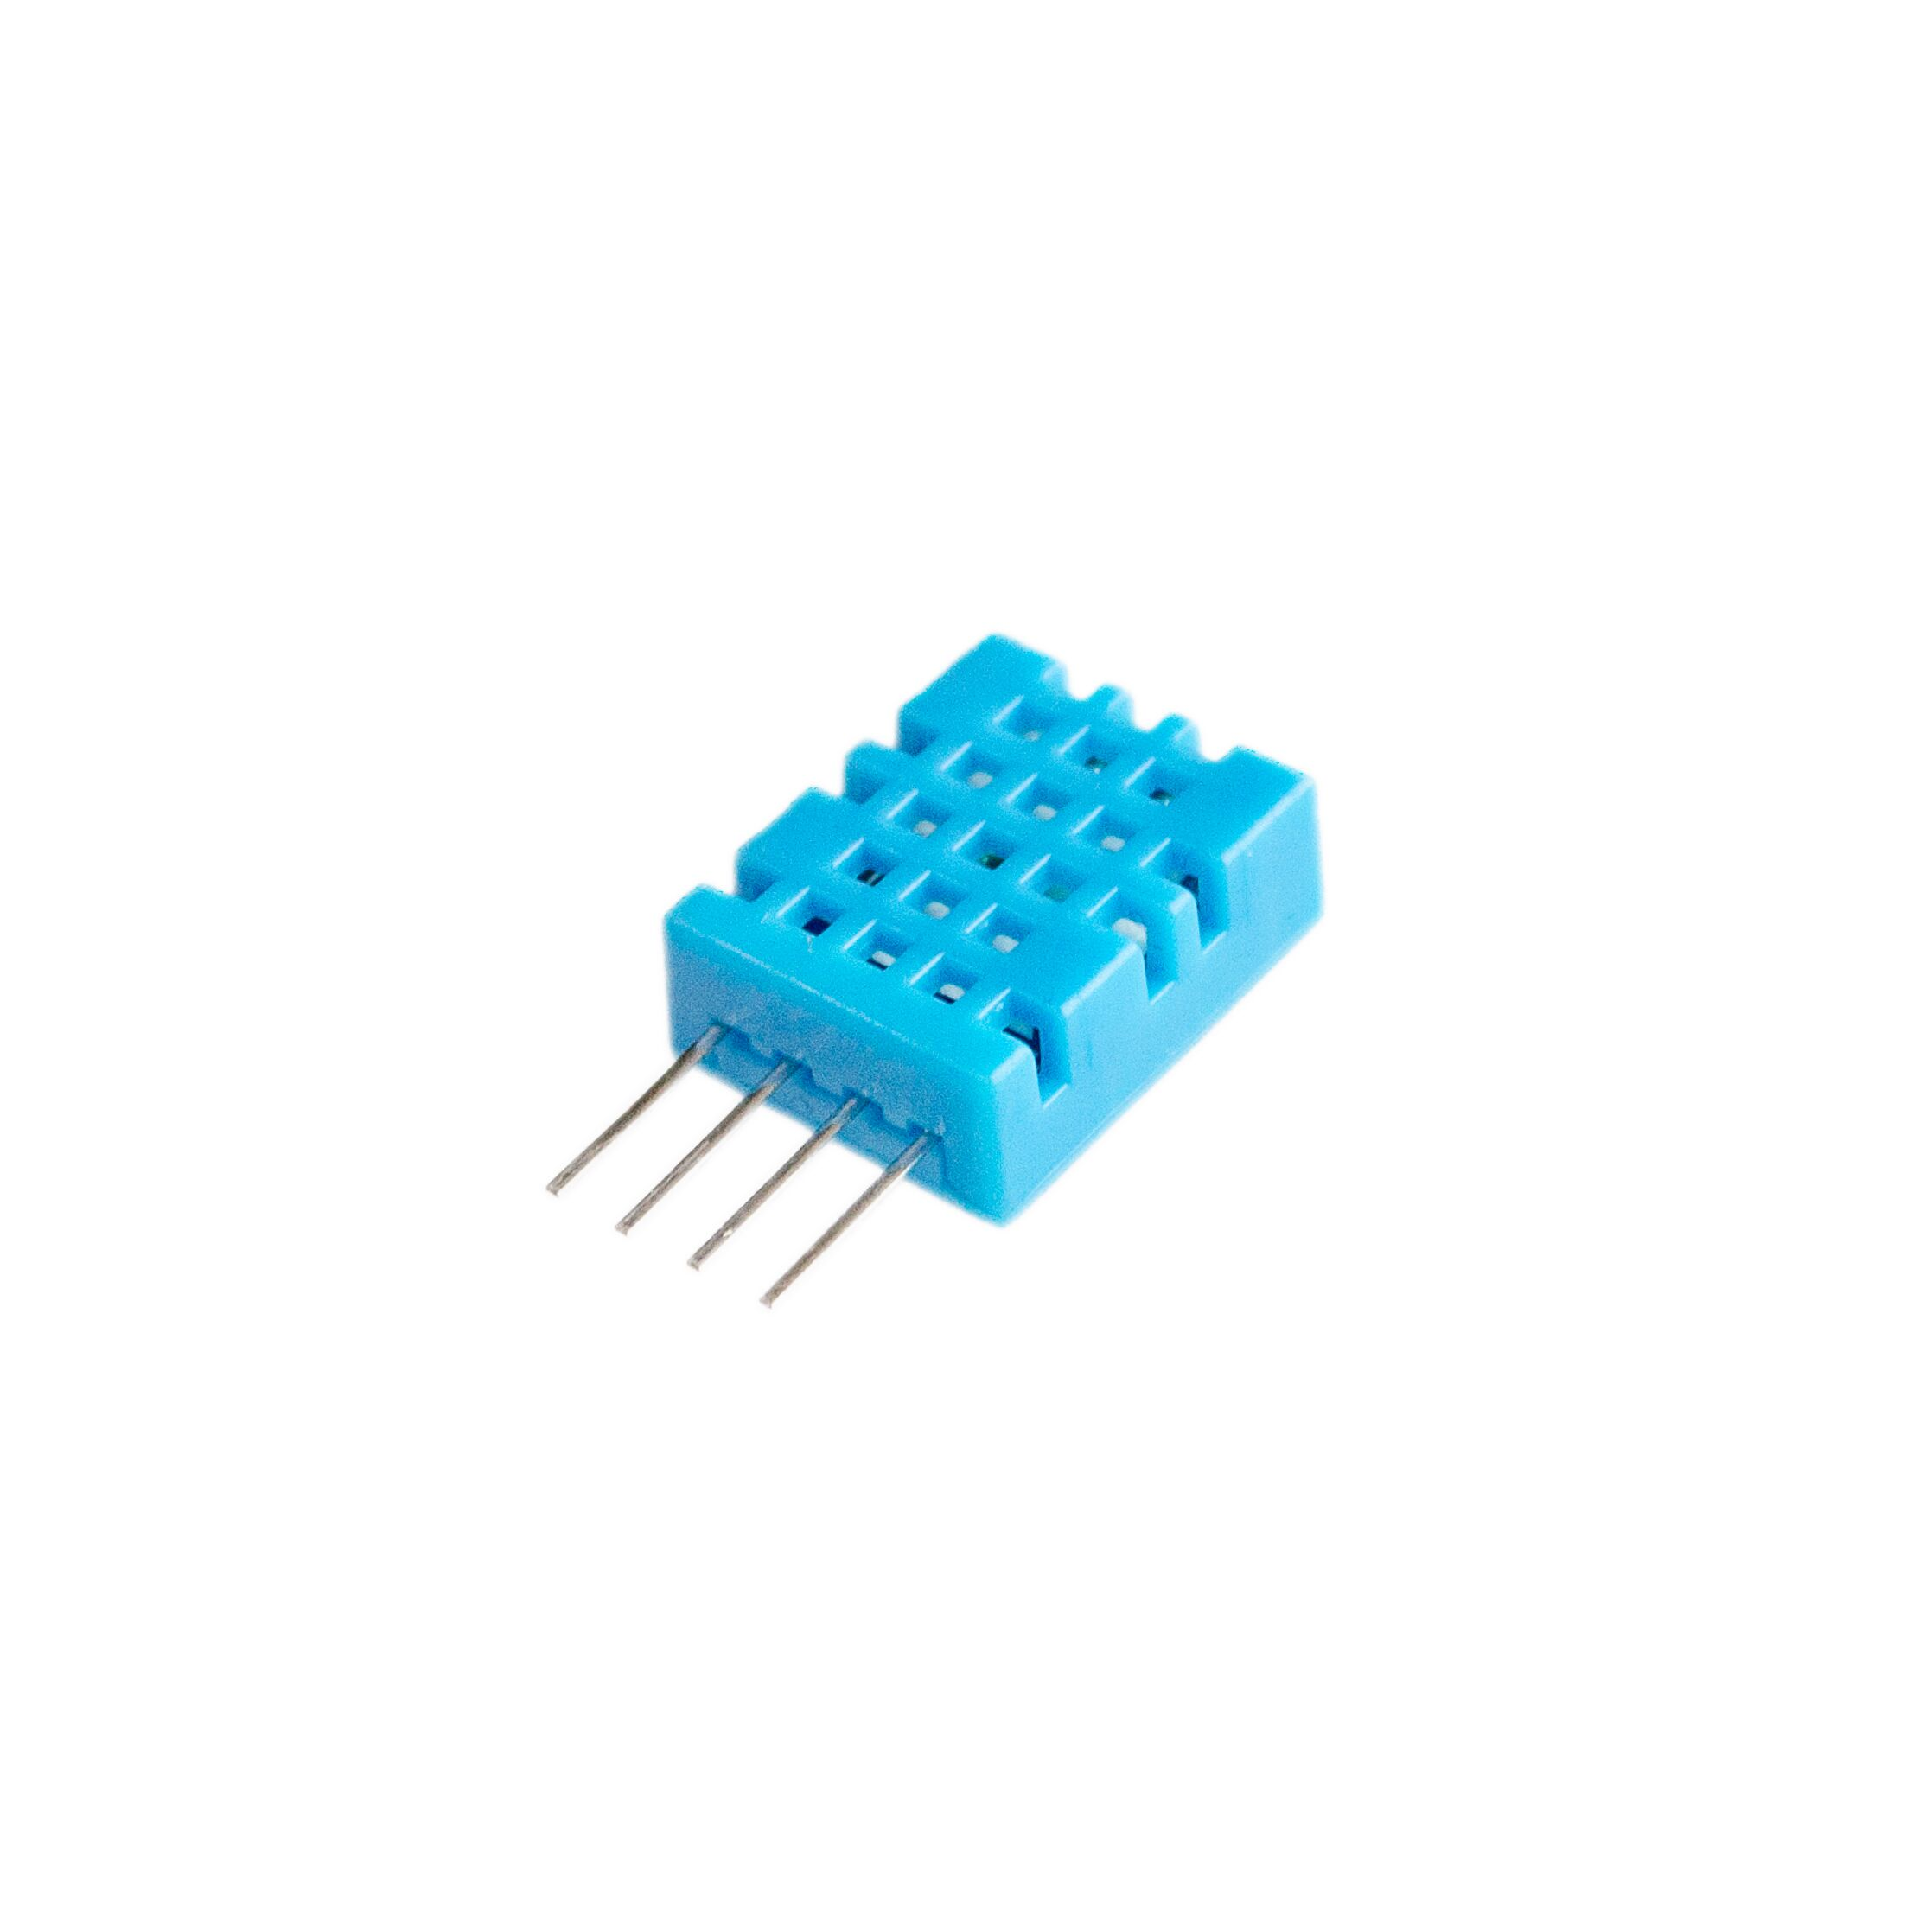 50PCS DHT11 Digital Temperature and Humidity Sensor